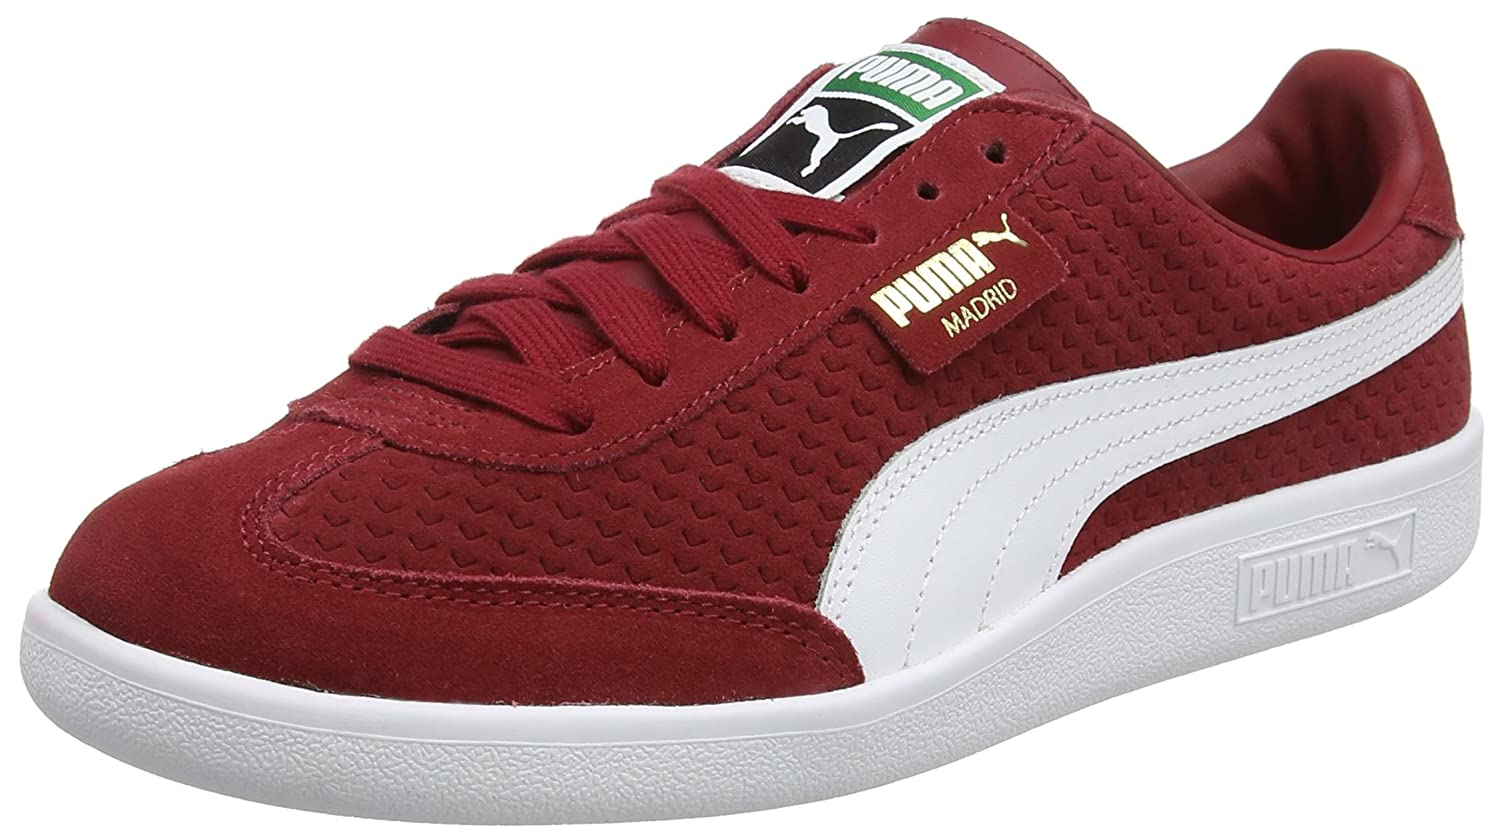 Puma Unisex-Erwachsene Madrid Perforated Suede Sneaker  43 EU|Rot (Red Dahlia-puma White-puma Team Gold)